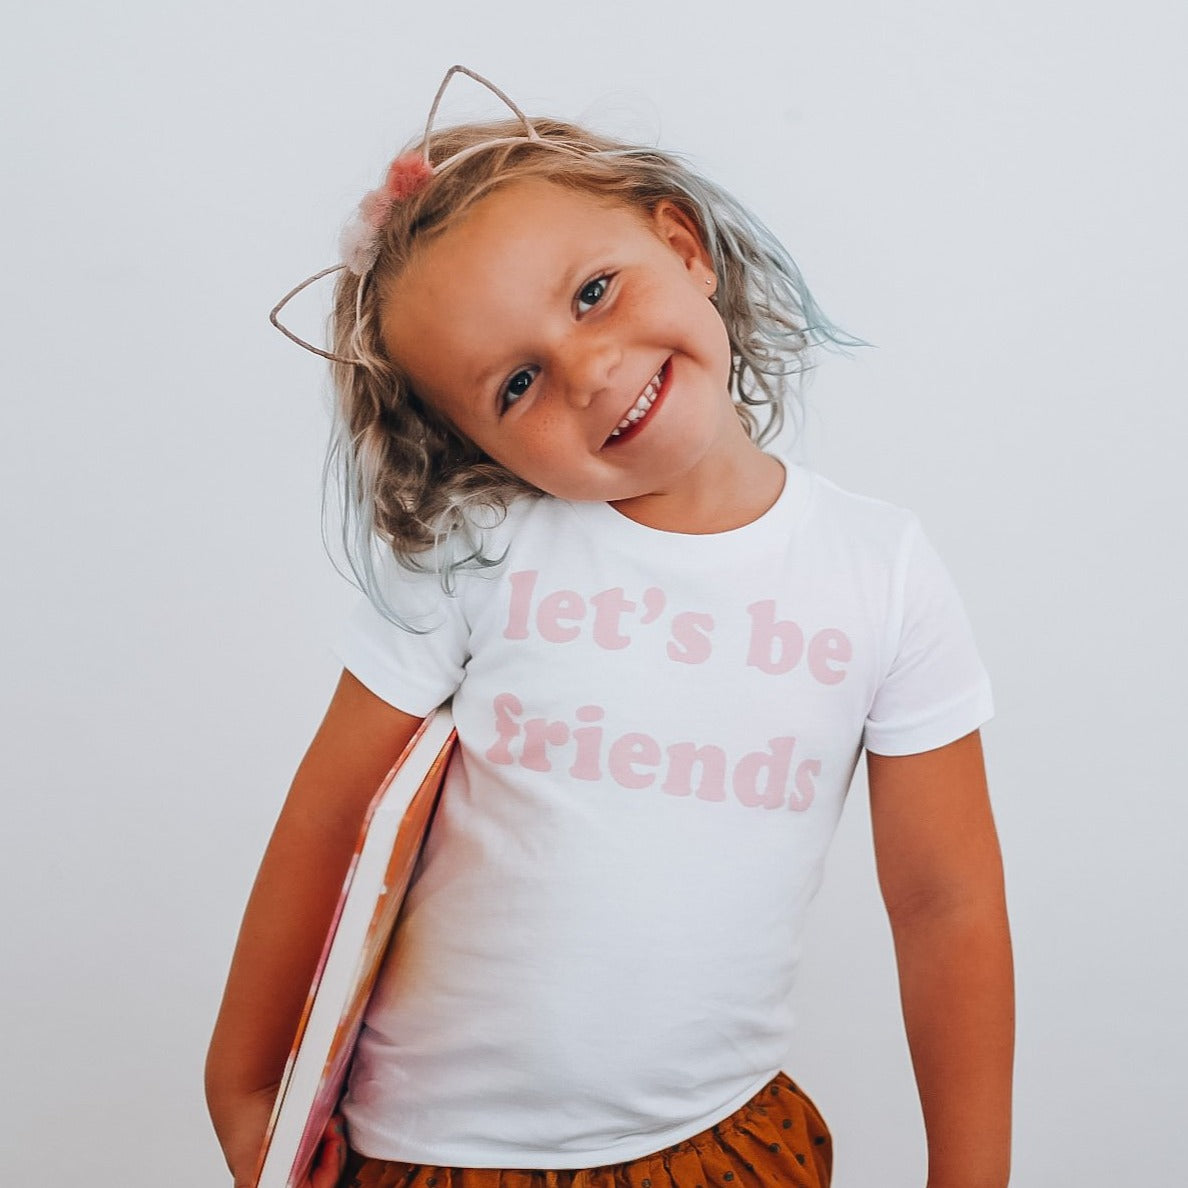 LET'S BE FRIENDS -  Toddler & Youth  T-Shirt ( PINK DESIGN )